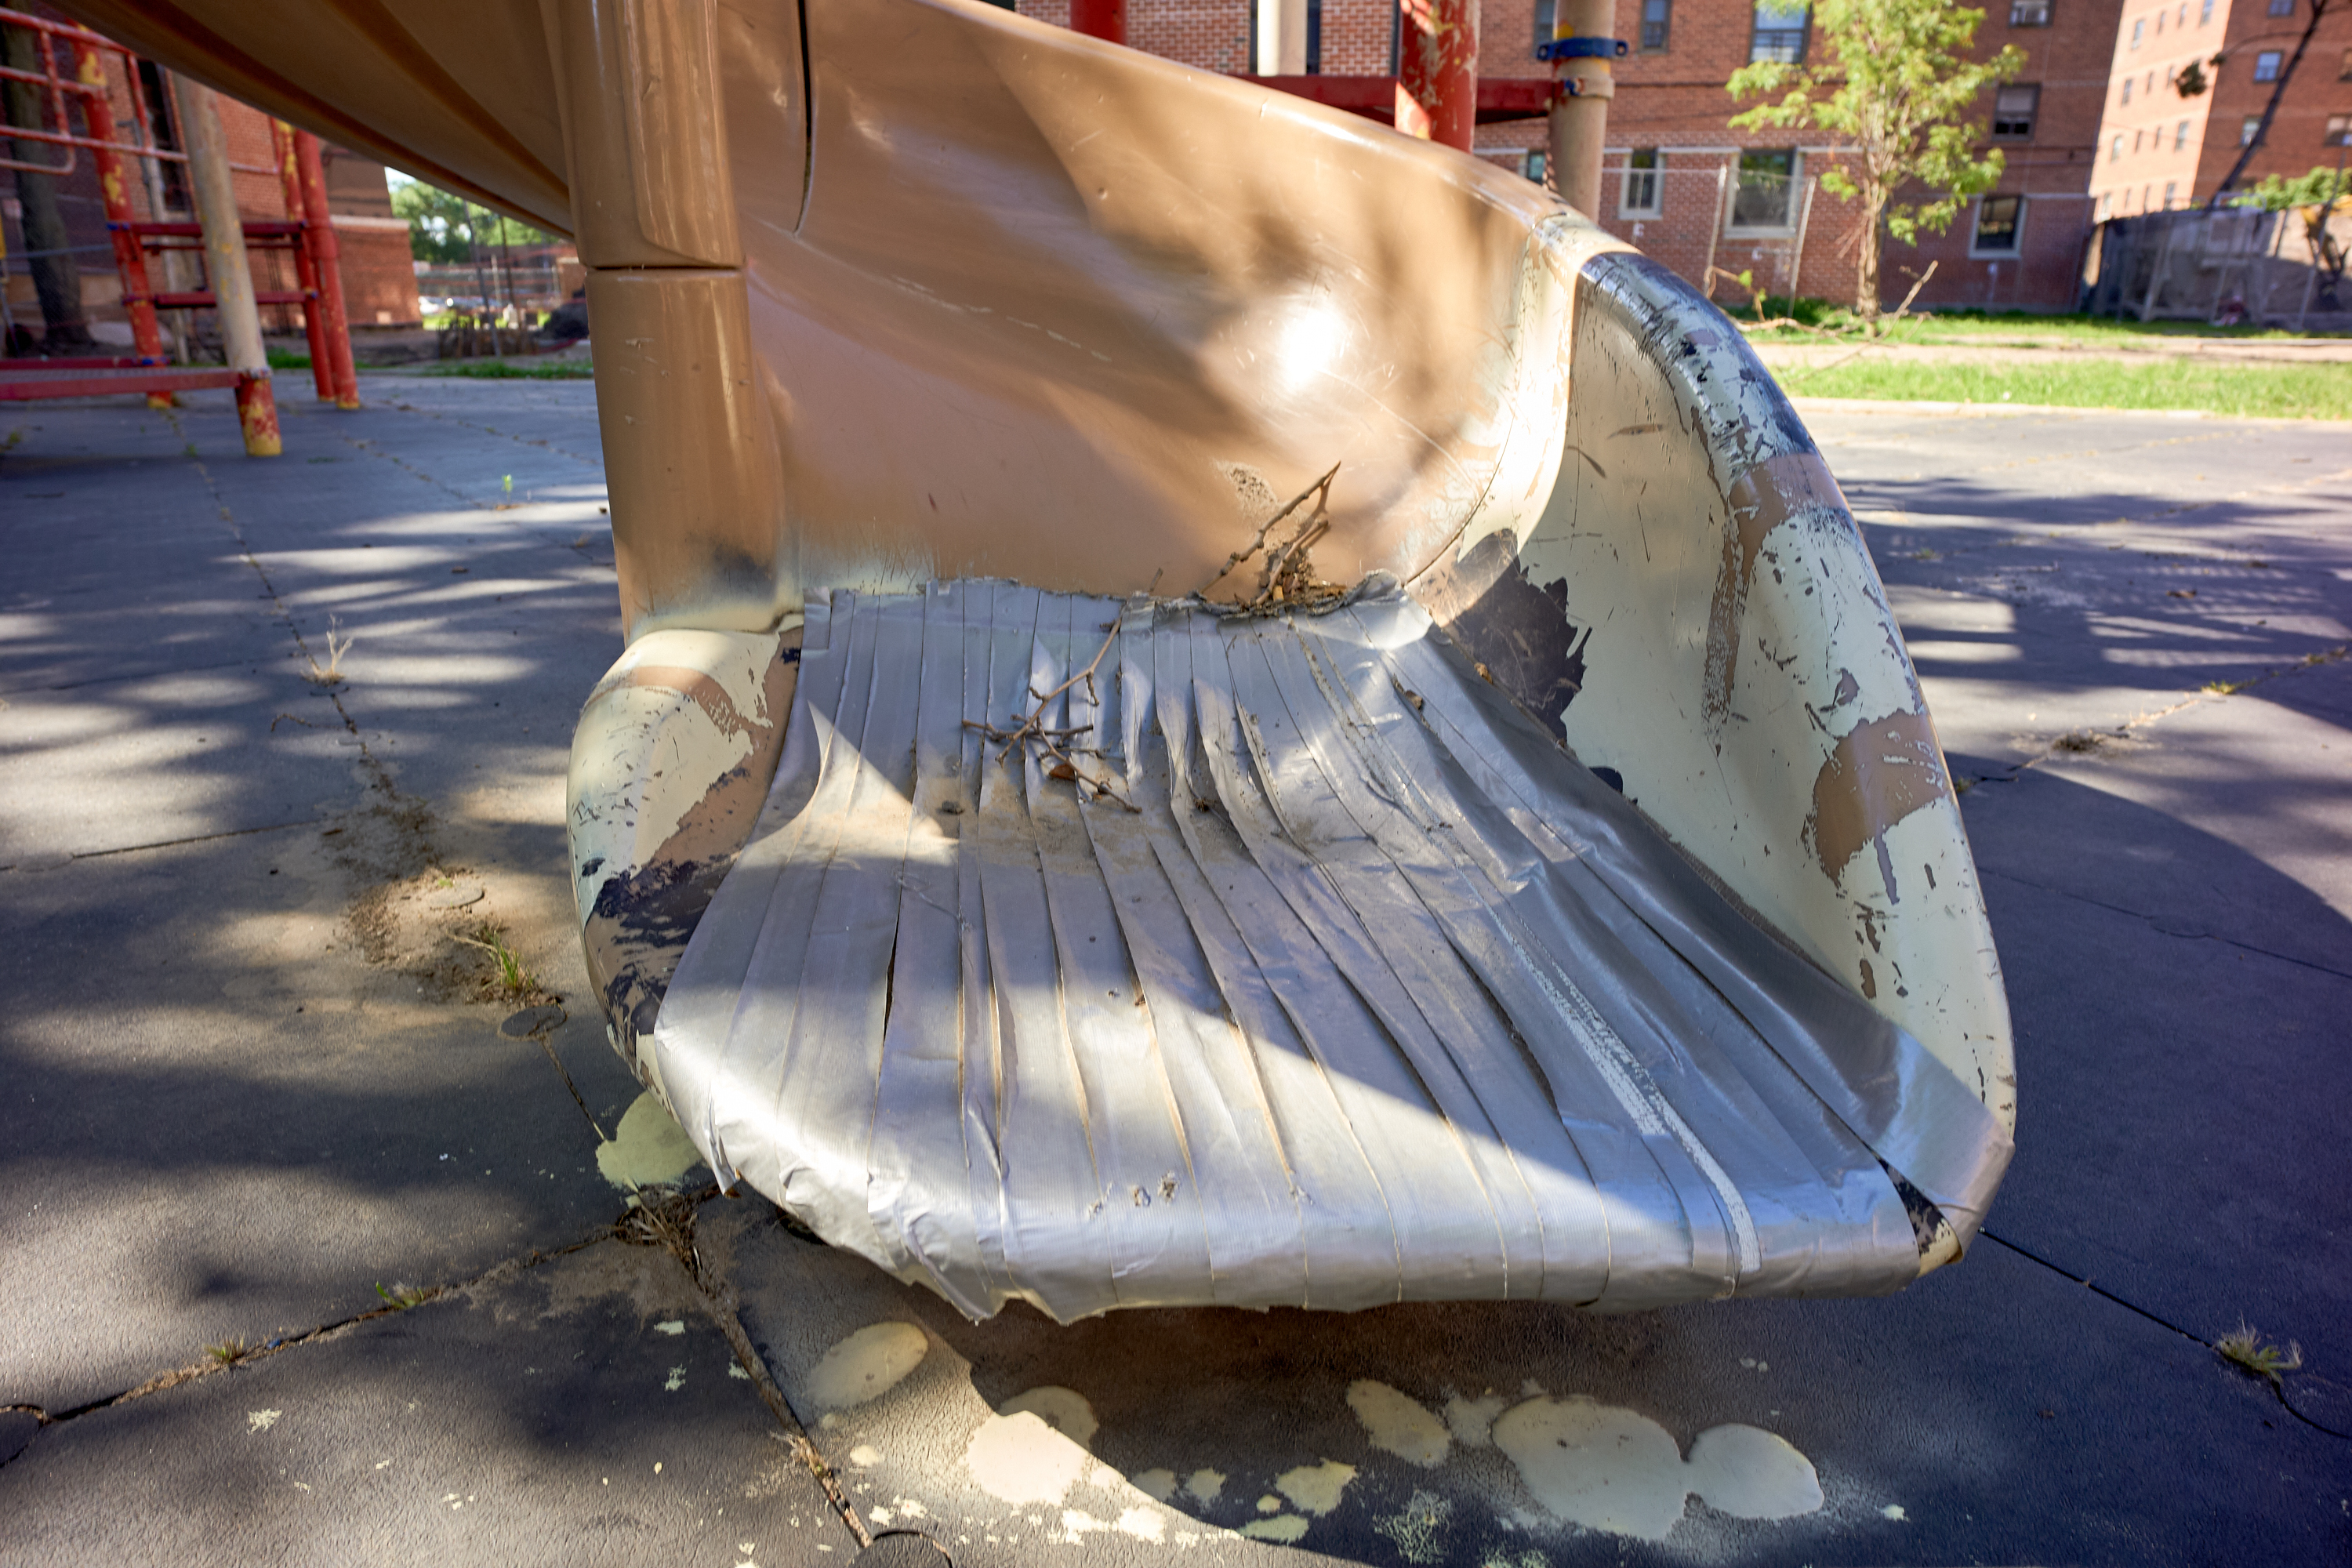 A slide with makeshift repairs at the Gravesend Houses, July 14, 2020.